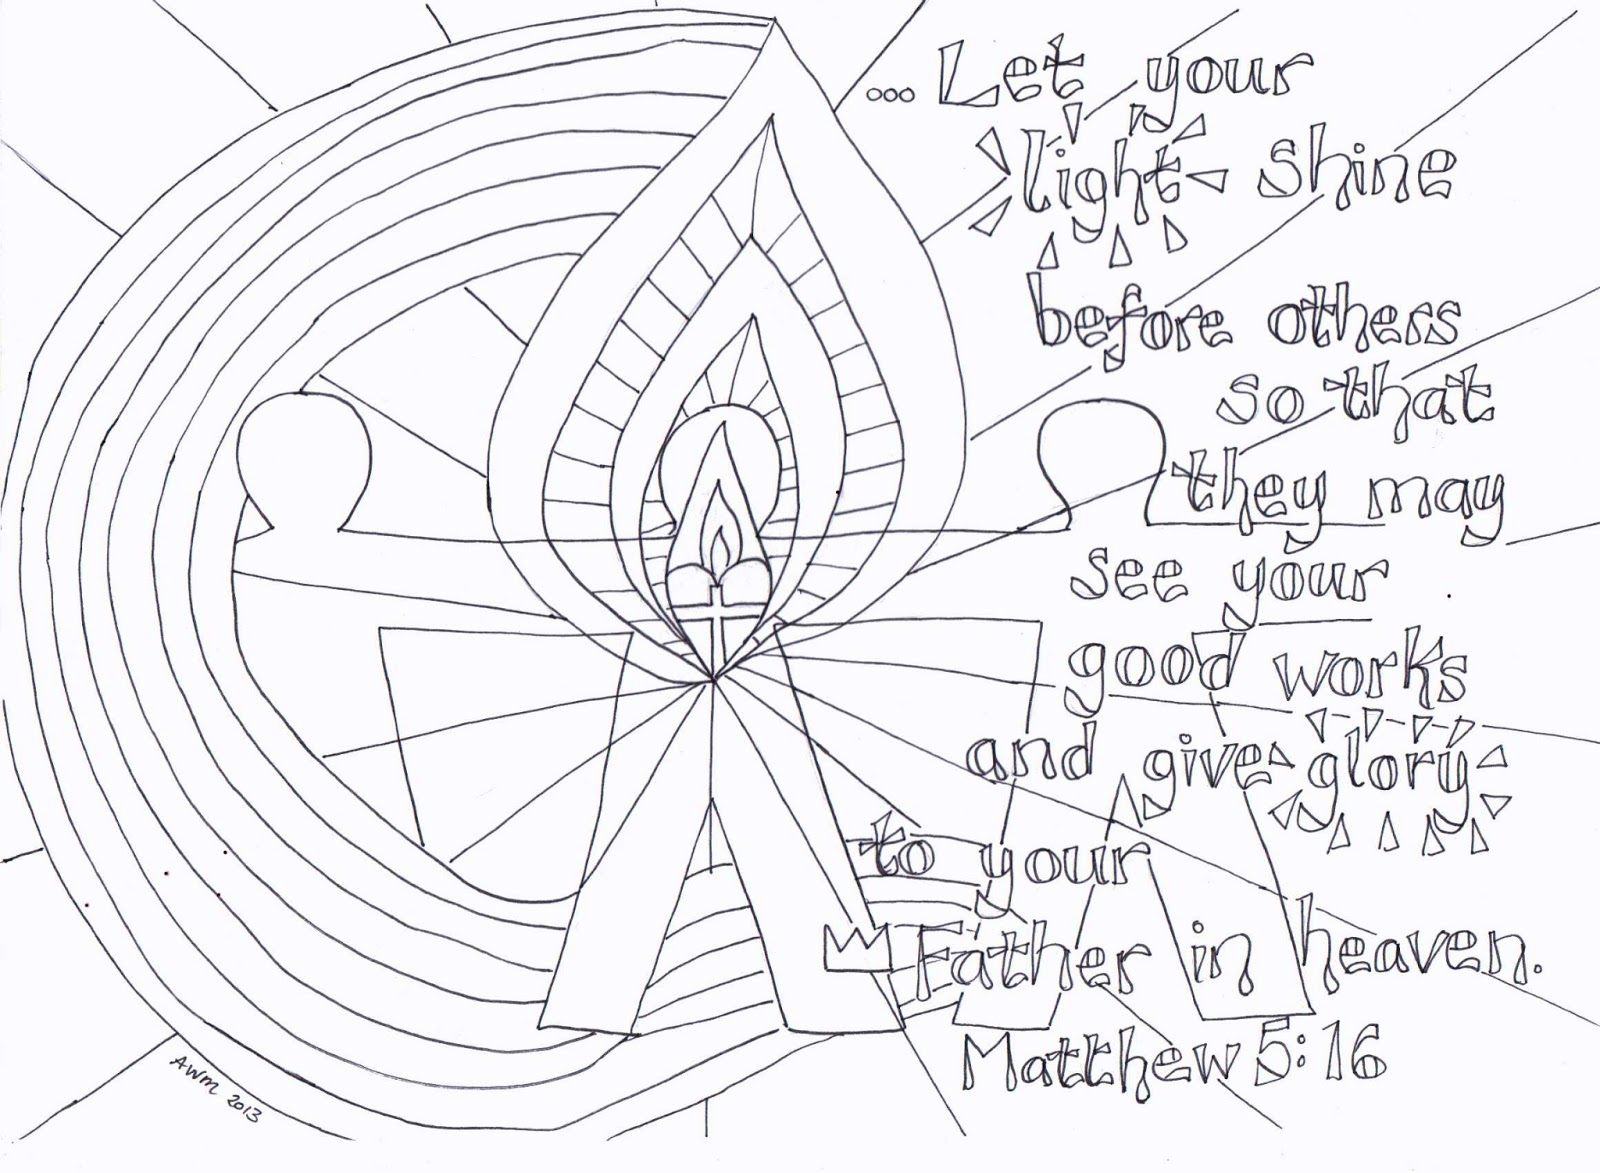 Salt And Light Coloring Page Flame Creative Children's Ministry Let Your Light Shine .